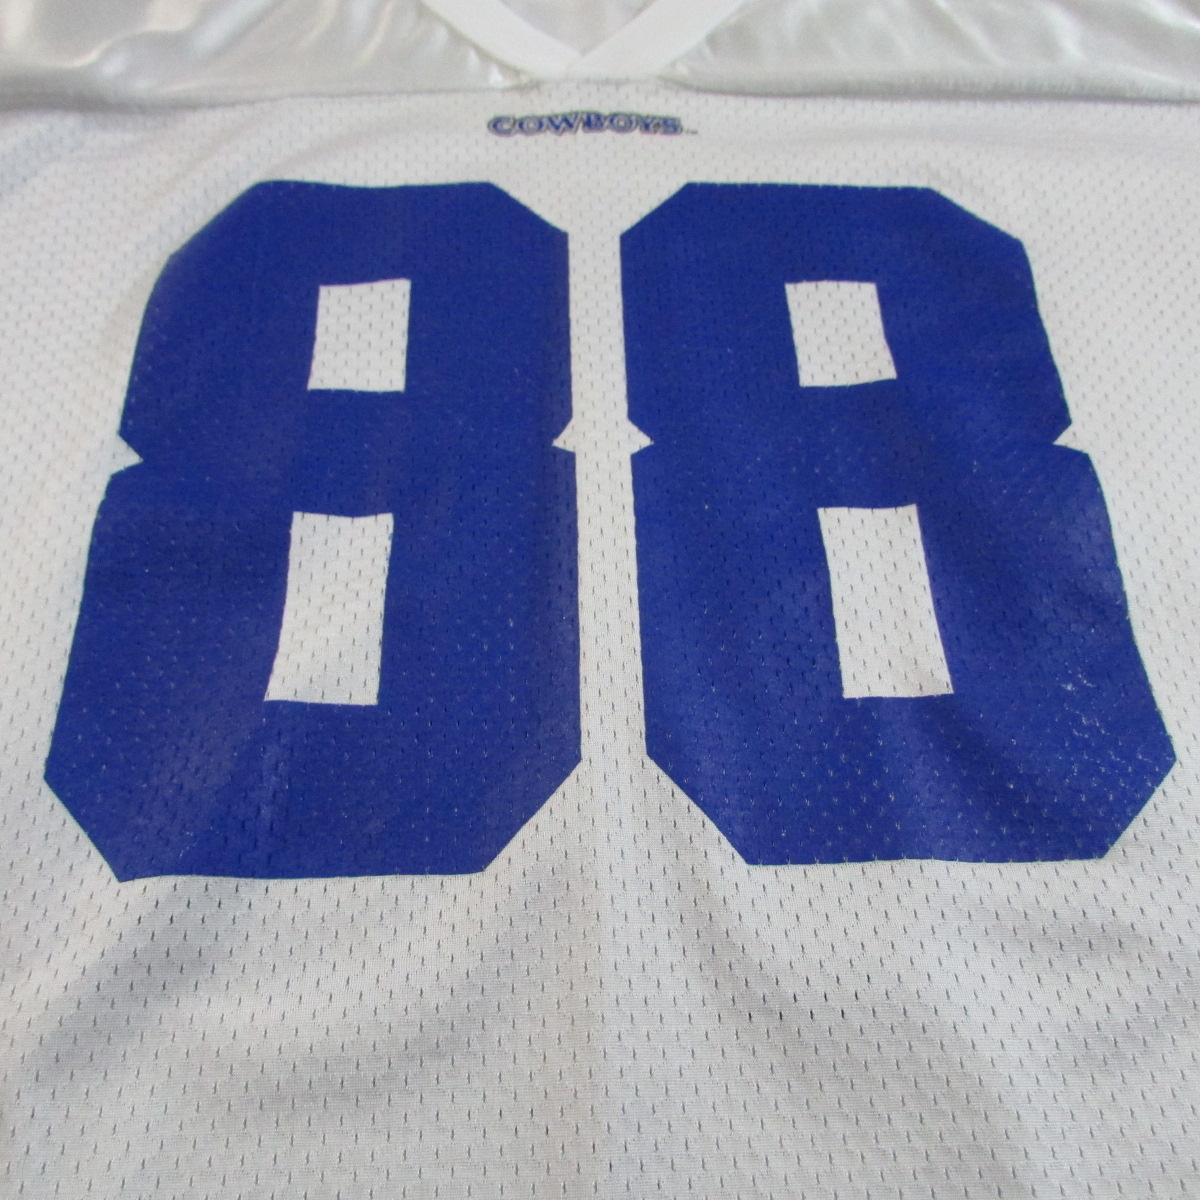 1992 Dallas Cowboys Michael Irvin Vintage Football Jersey Reebok Sz XL